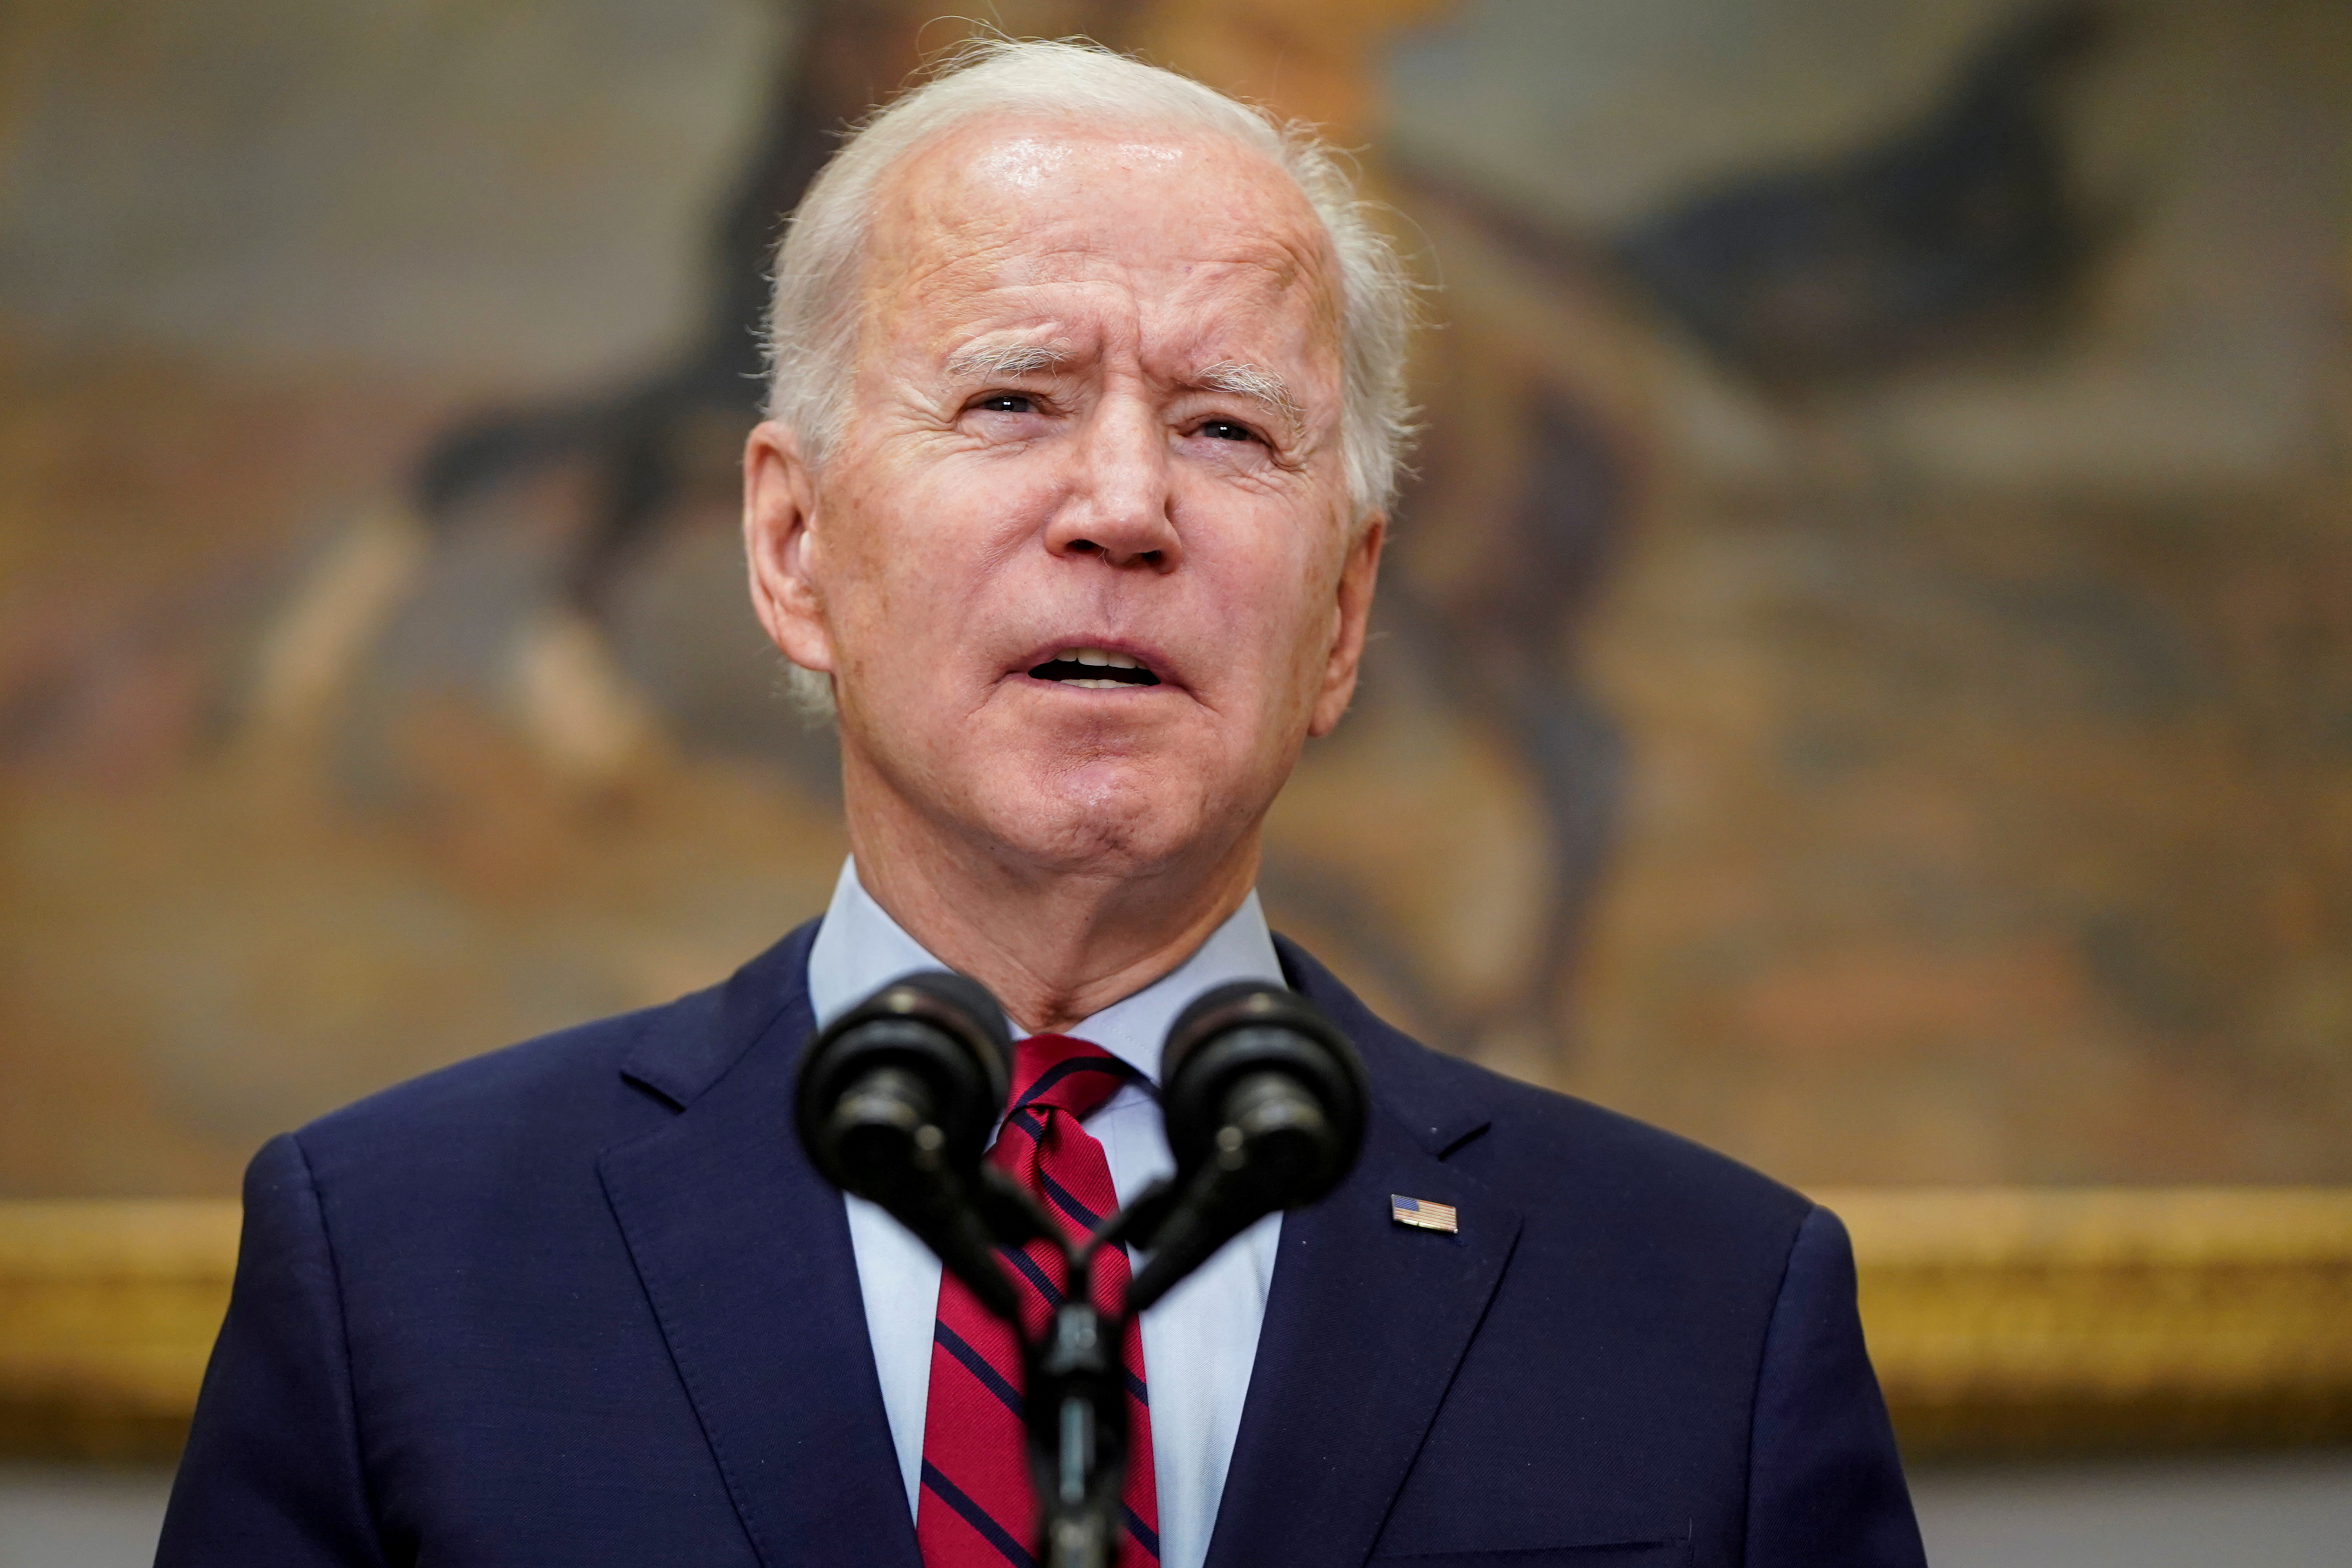 U.S. President Joe Biden speaks after the House of Representatives passed his $1.9 trillion coronavirus relief package in the Roosevelt Room of the White House in Washington, U.S., February 27, 2021.  REUTERS/Joshua Roberts - RC281M9NH5NG